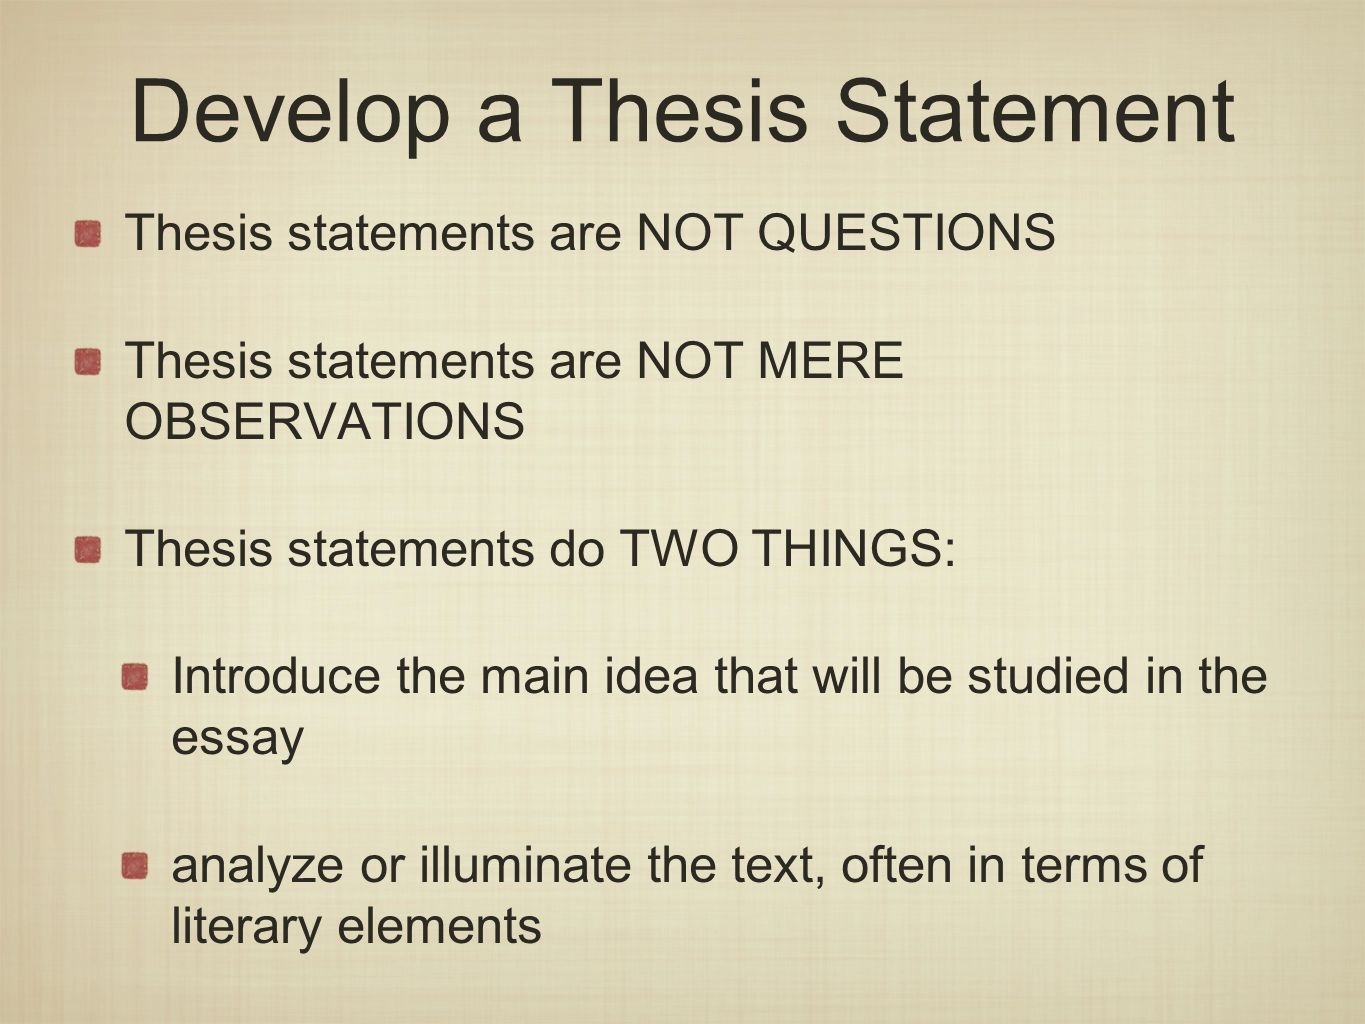 Develop a Thesis Statement Thesis statements are NOT QUESTIONS Thesis statements are NOT MERE OBSERVATIONS Thesis statements do TWO THINGS: Introduce the main idea that will be studied in the essay analyze or illuminate the text, often in terms of literary elements